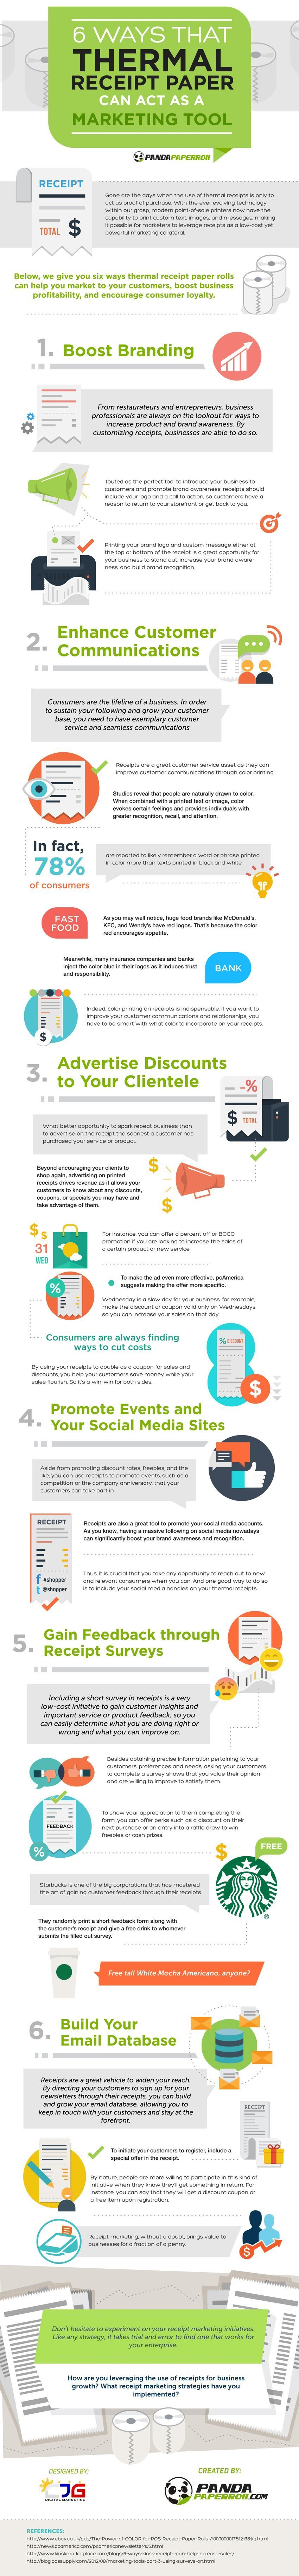 6 Ways that Thermal Receipt Paper can Act as a Marketing Tool (Infographic) - An Infographic from Panda Paper Roll